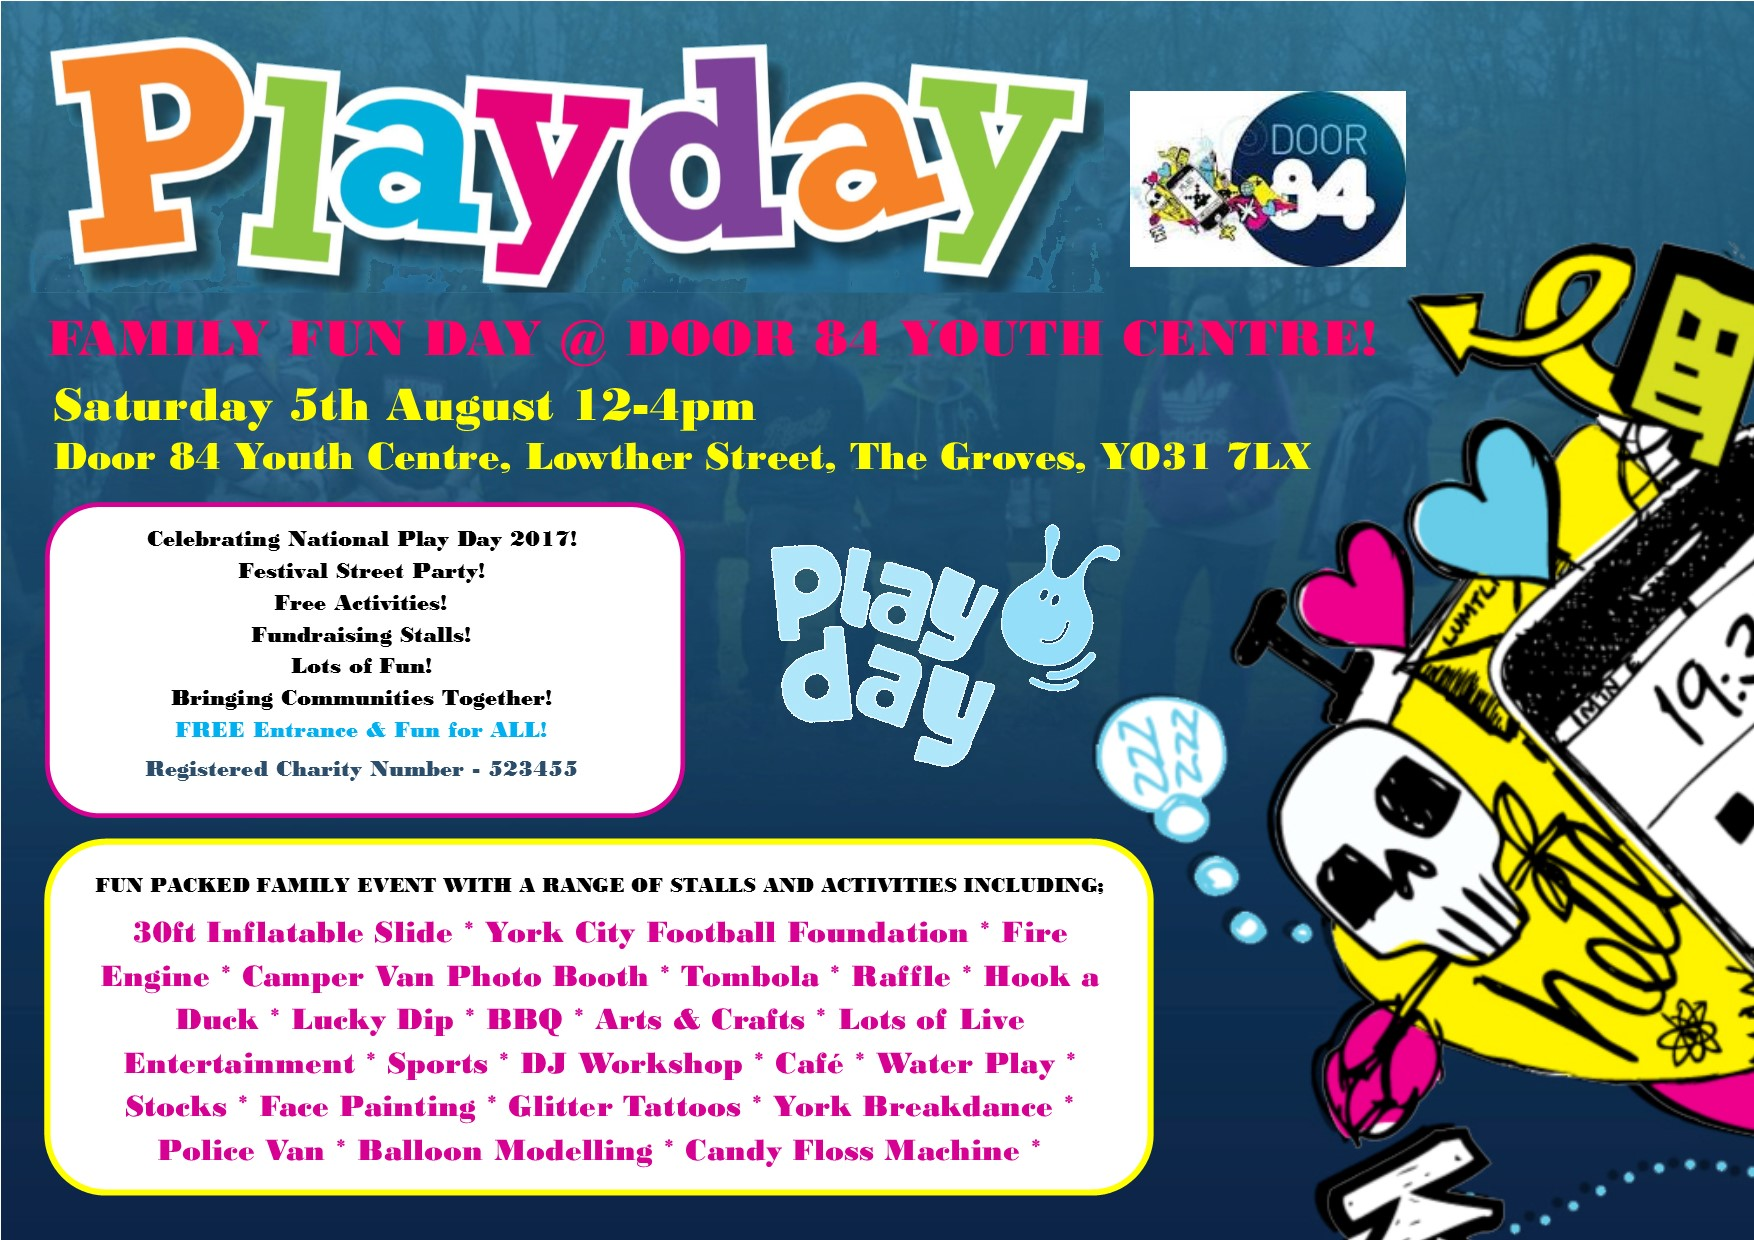 Door 84's Family Fun Day - Playday!